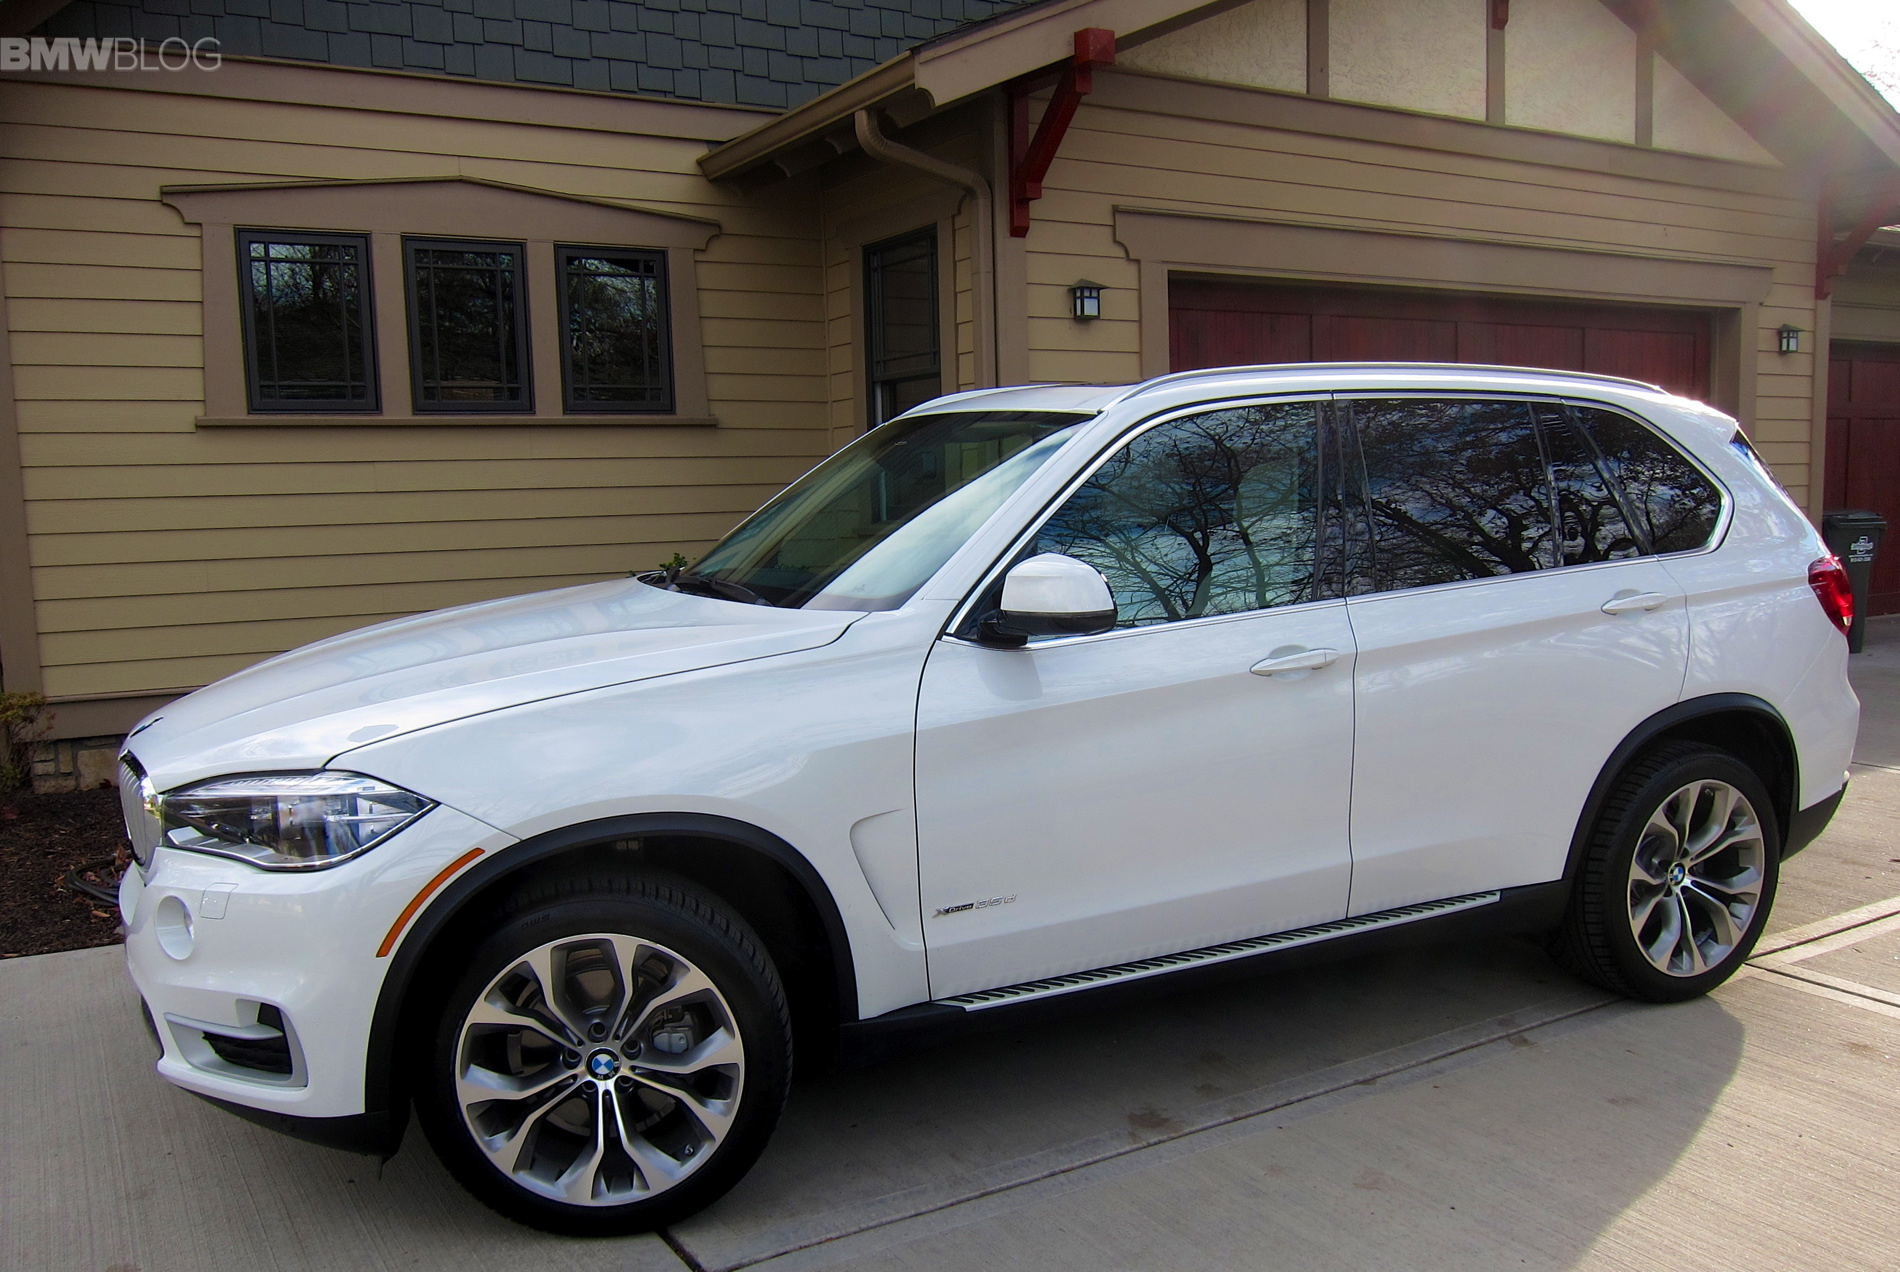 Bmw 5 Series 2016 >> 2016 BMW X5 xDrive35d undergoes minor technical updates, delivers in December 2015